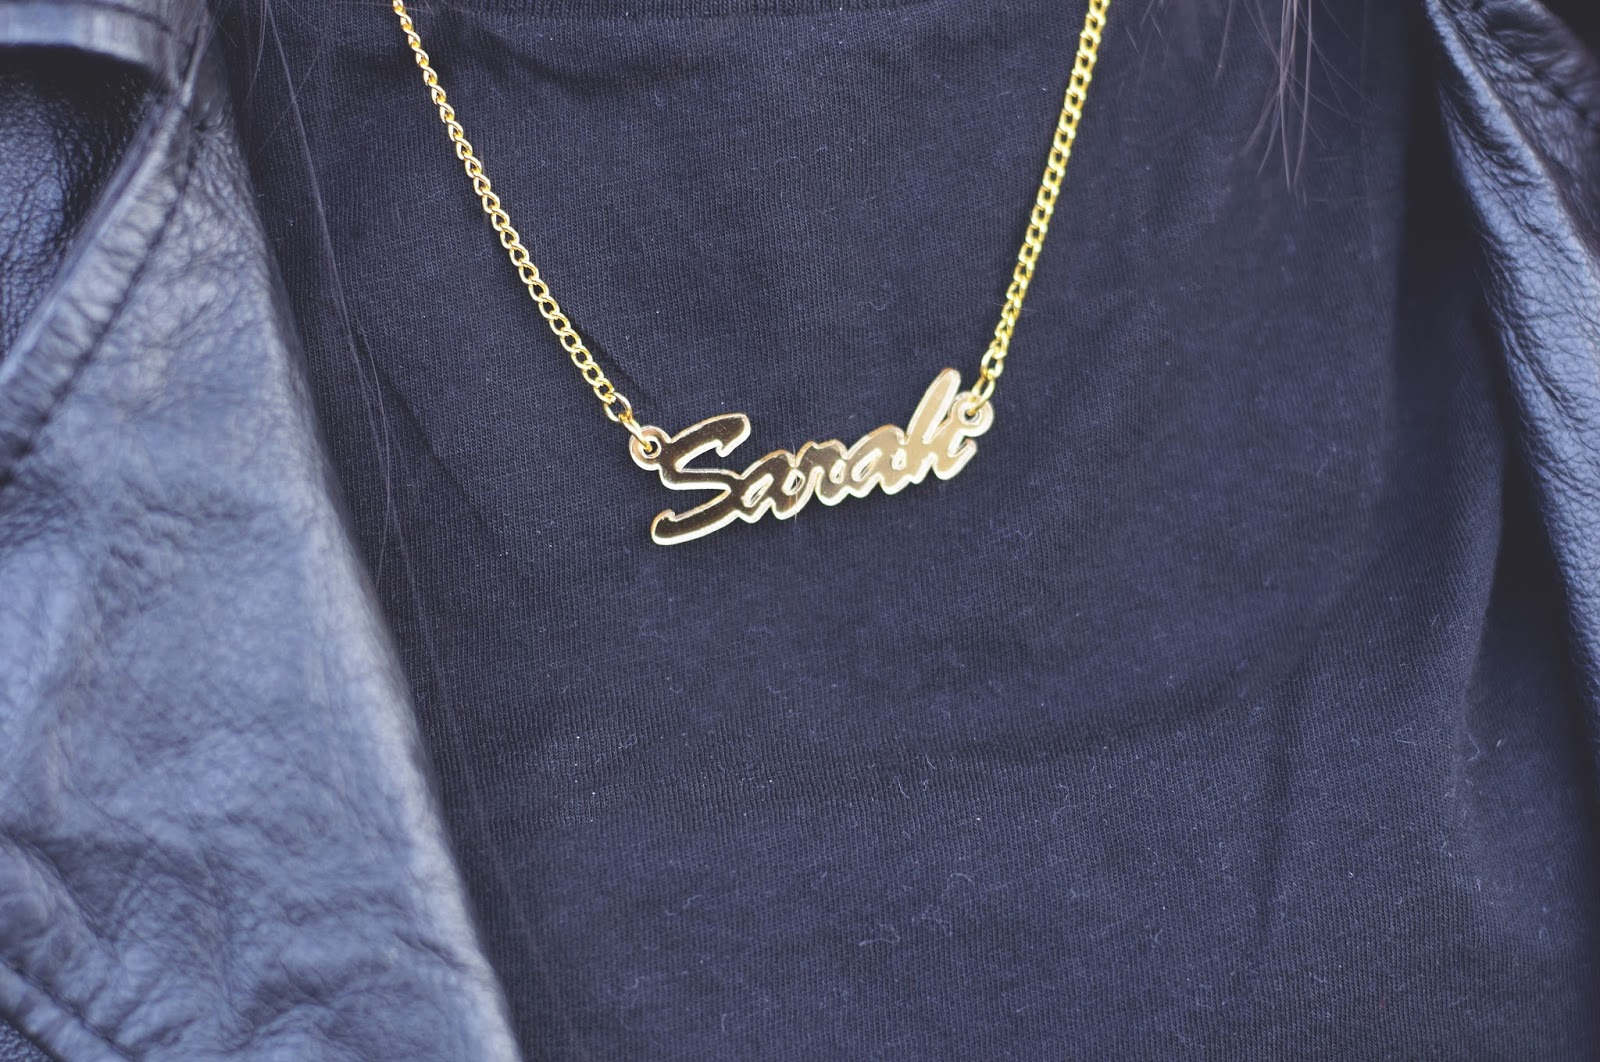 sex ad the city style name necklace, gold name necklace